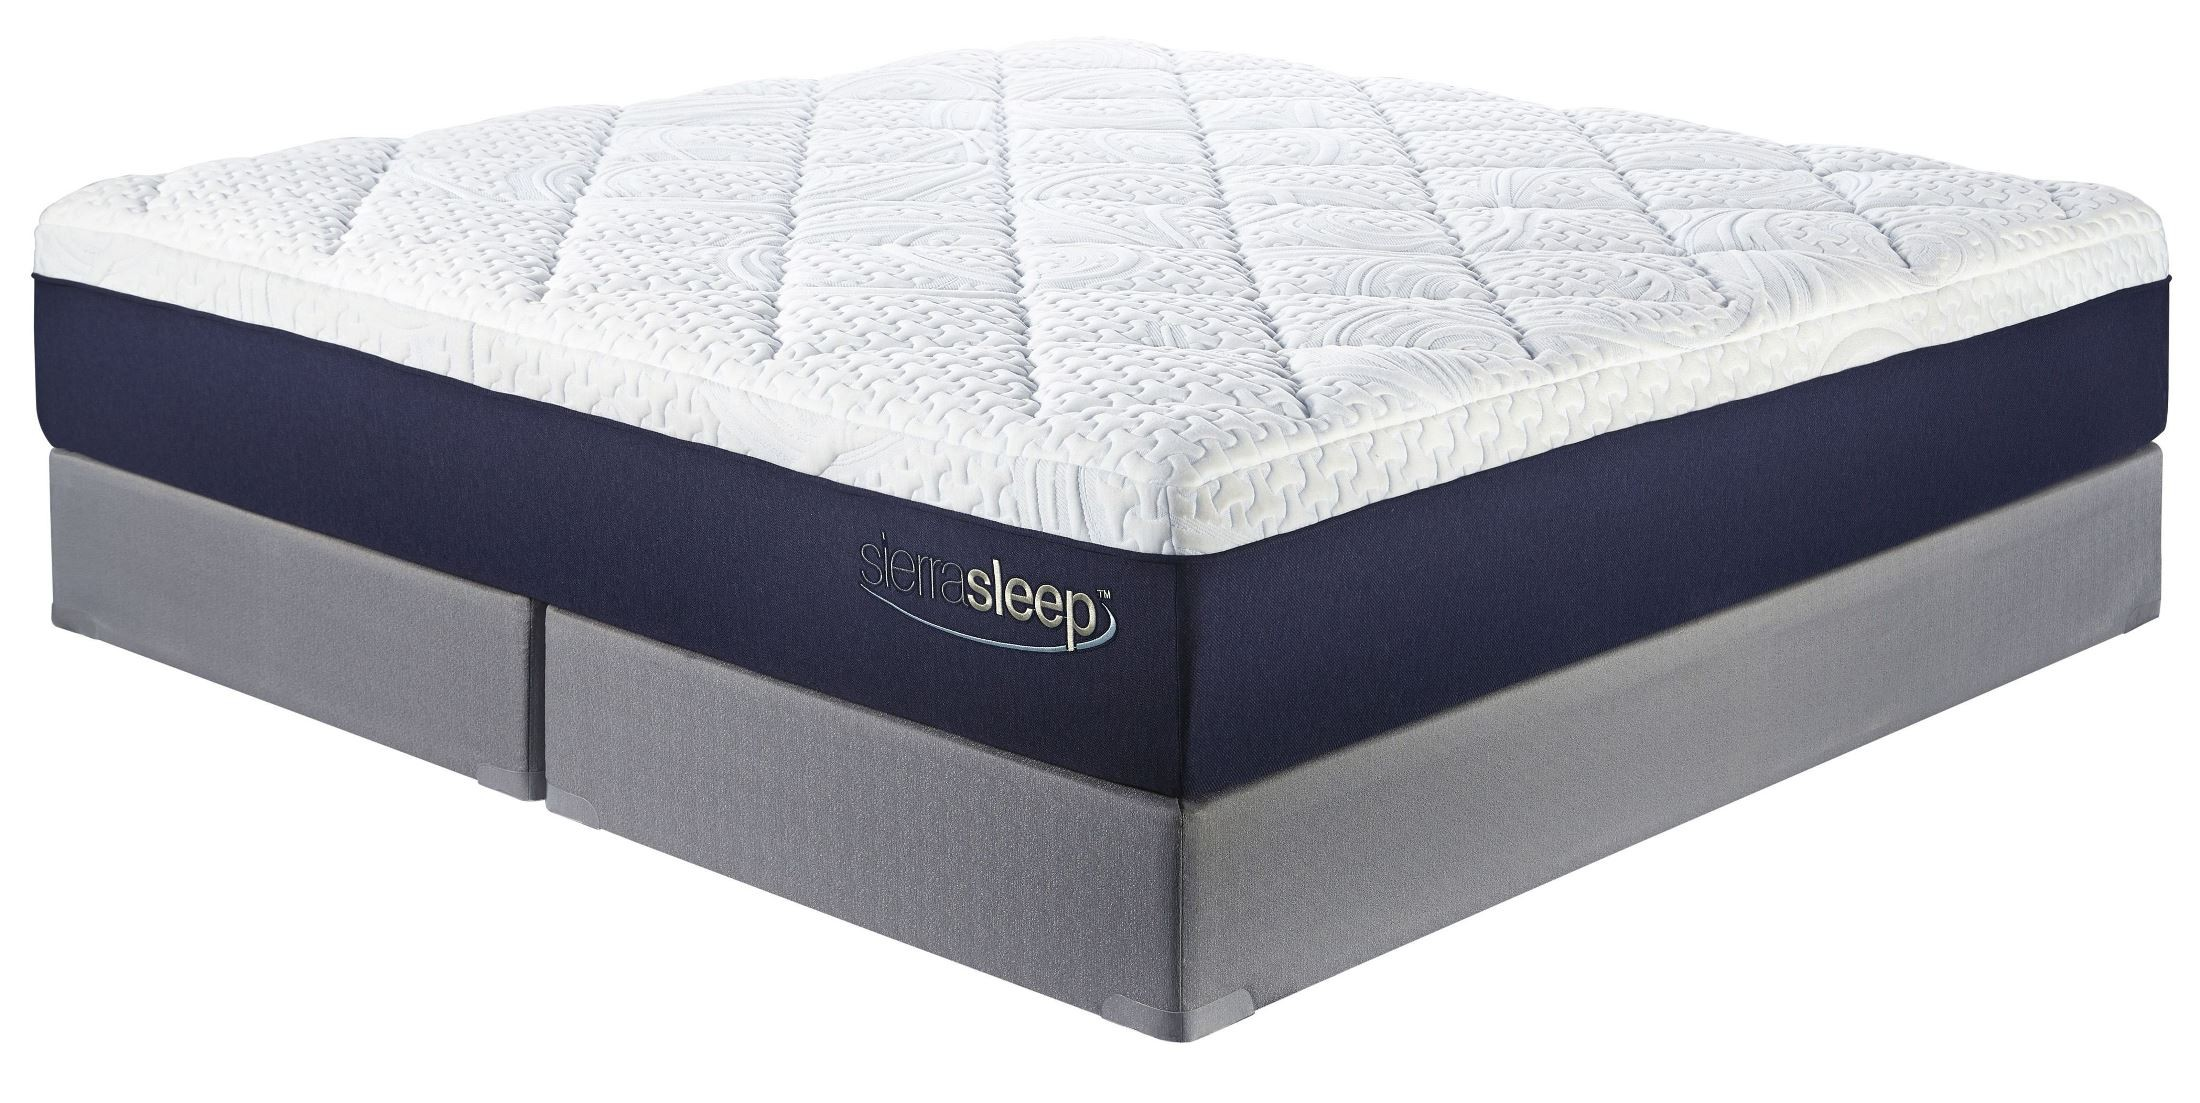 13 inch gel memory foam white cal king mattress with foundation m97451 m81x52 2 ashley Memory foam king mattress